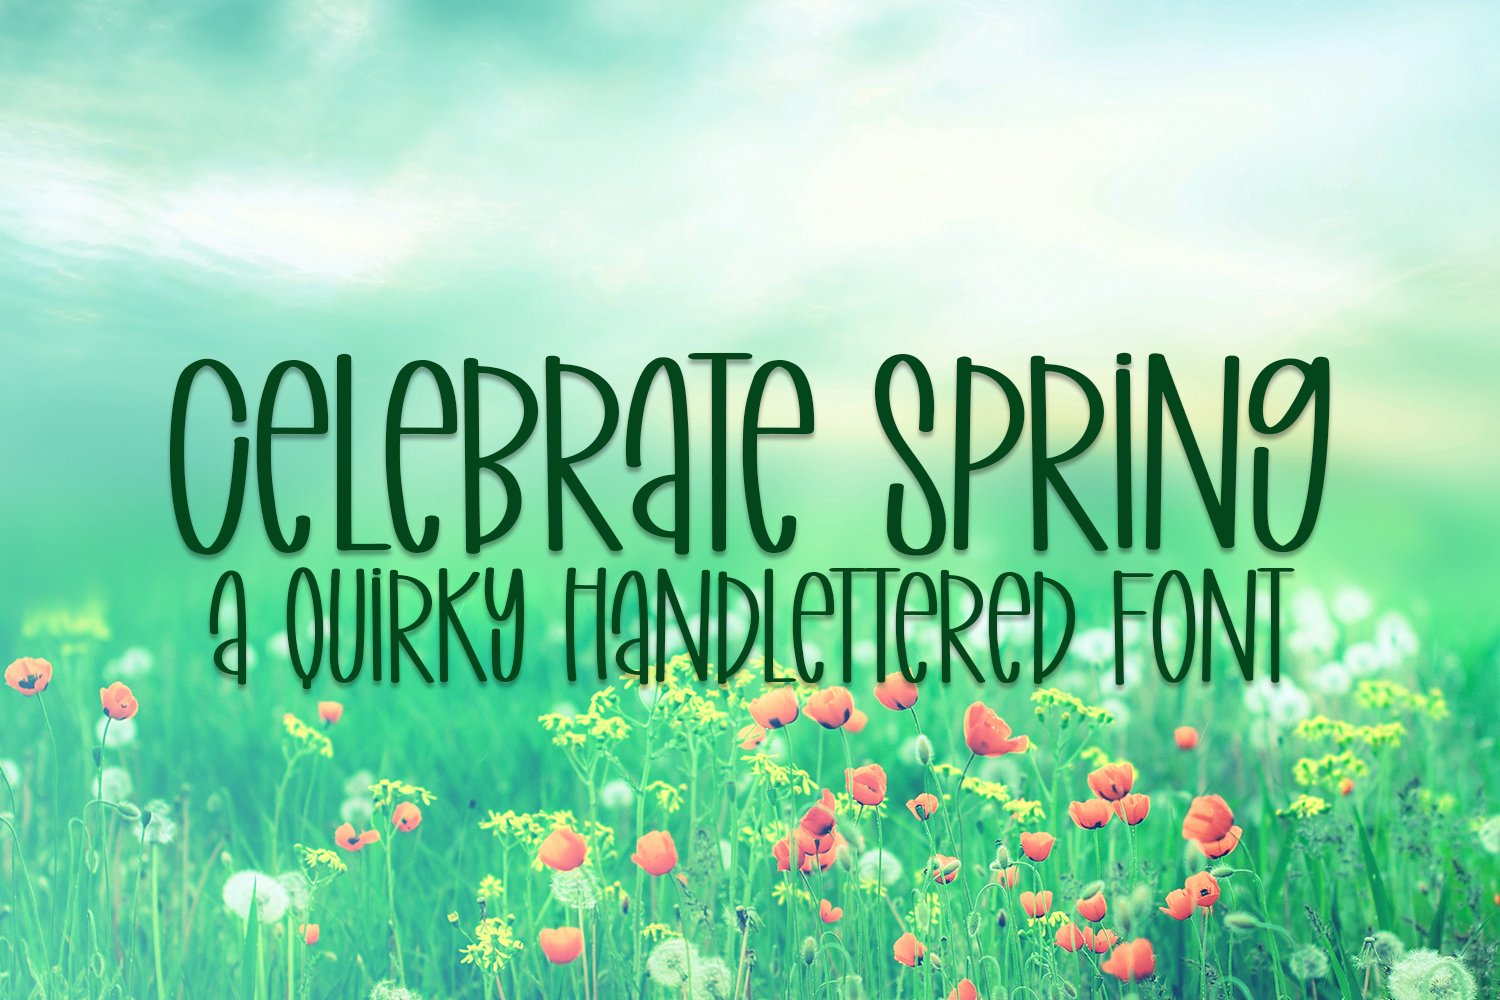 Celebrate Spring - A Quirky Handlettered Font example image 1